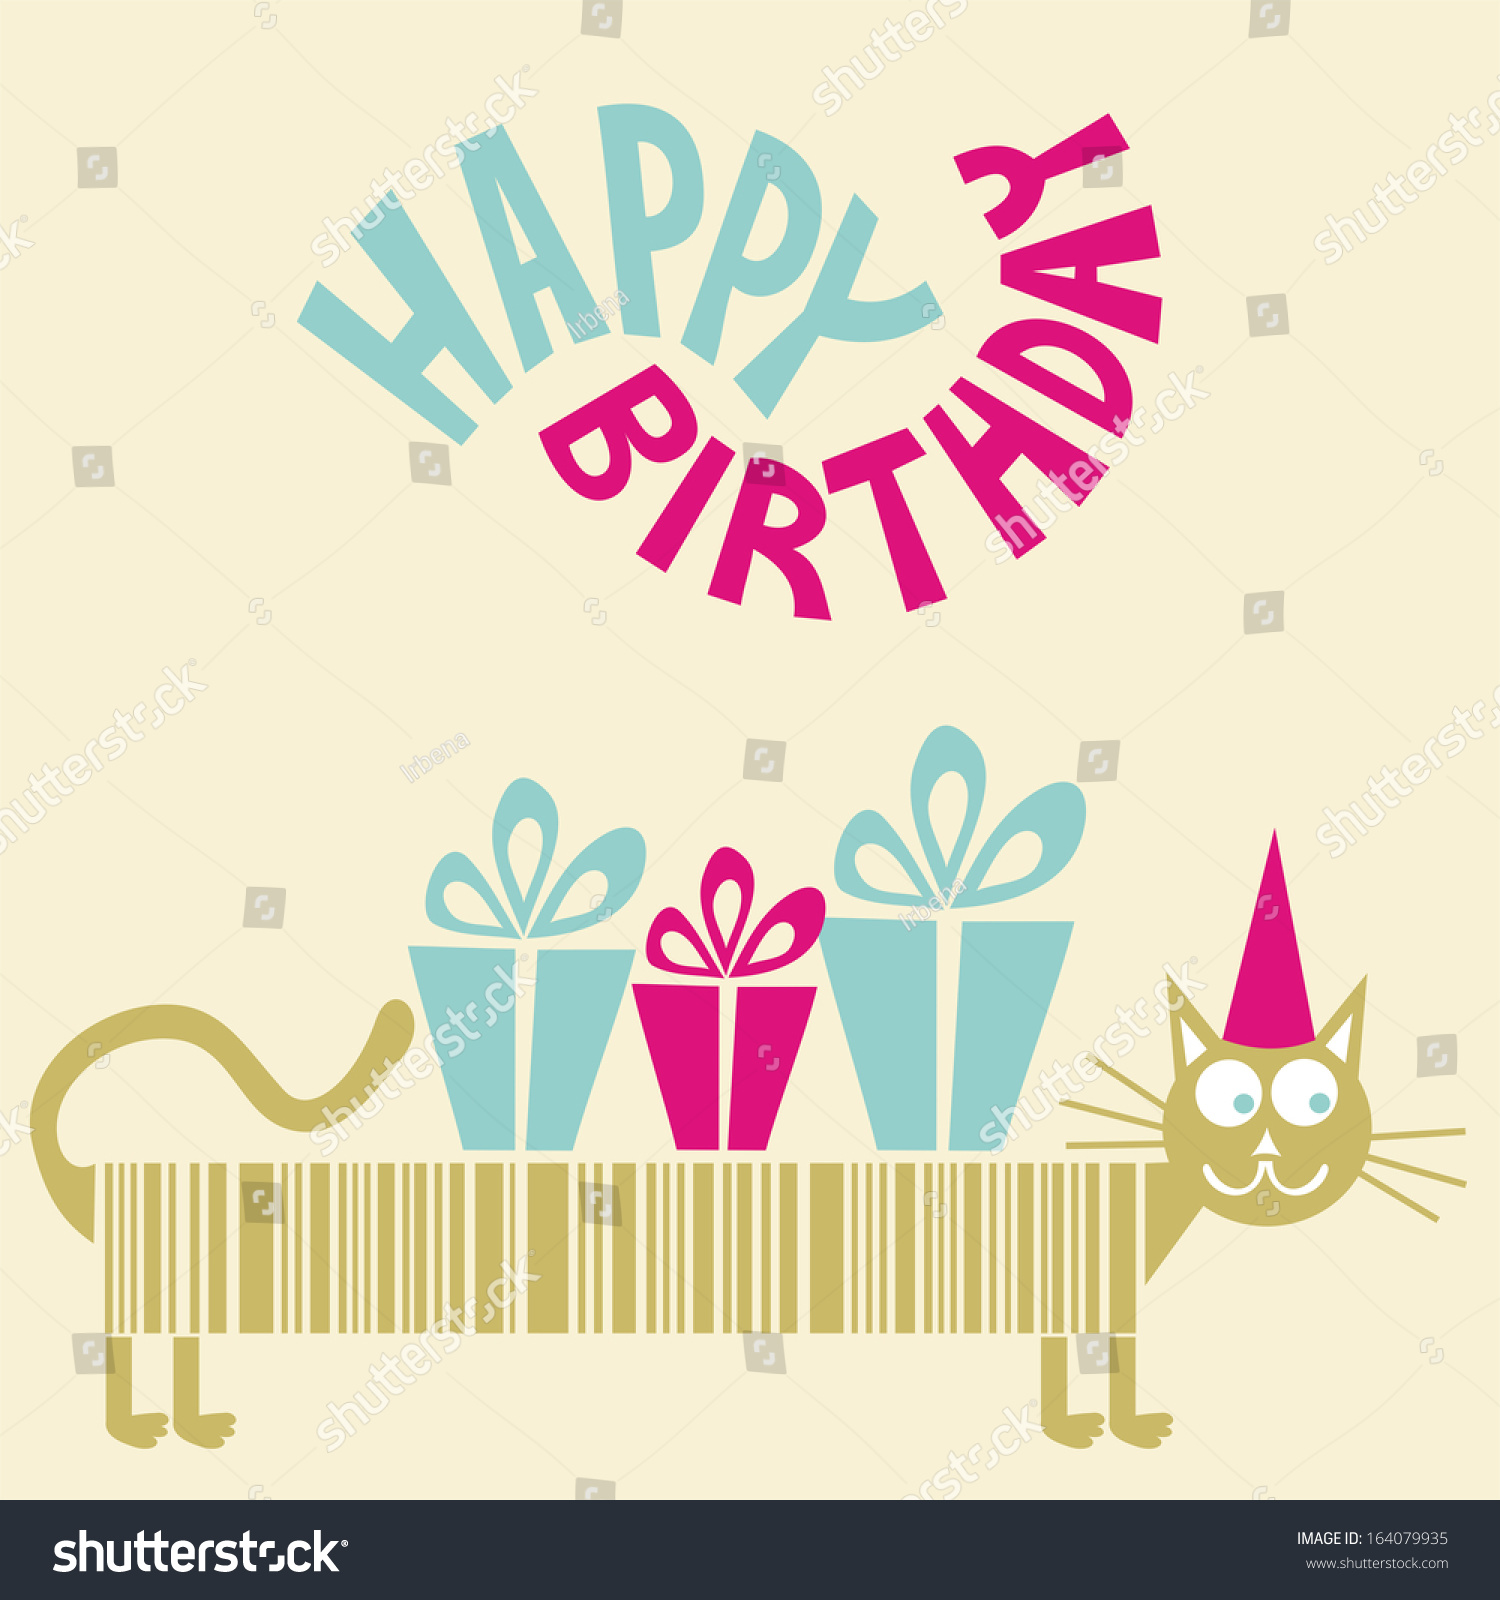 Royalty free stock illustration of happy birthday greeting card long happy birthday greeting card long cat illustration m4hsunfo